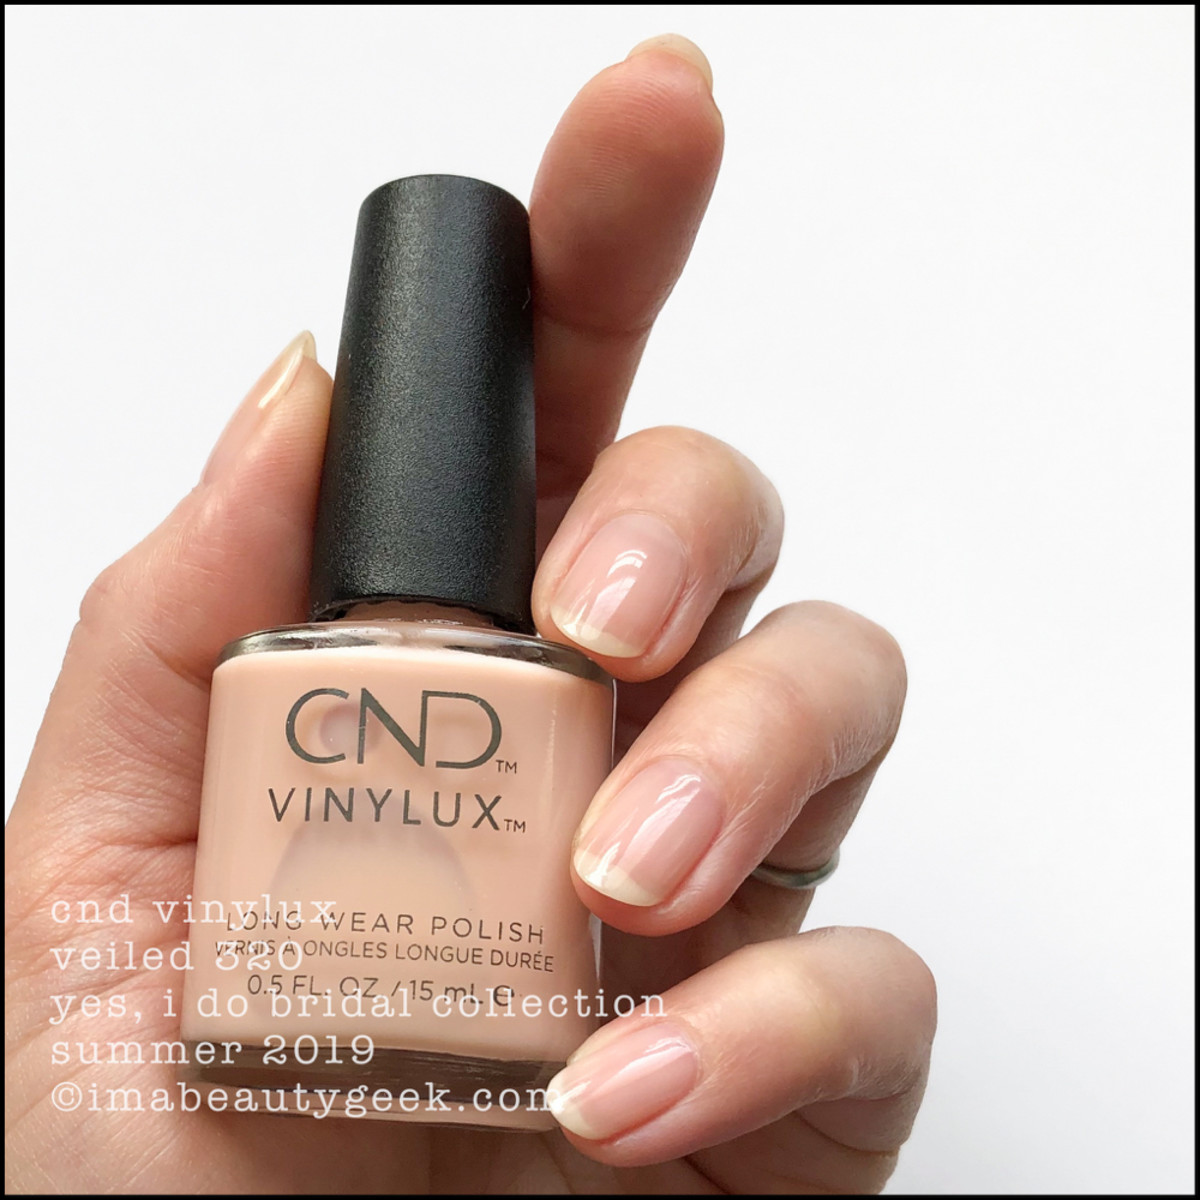 CND Veiled 320 - Yes I Do Bridal Collection 2019